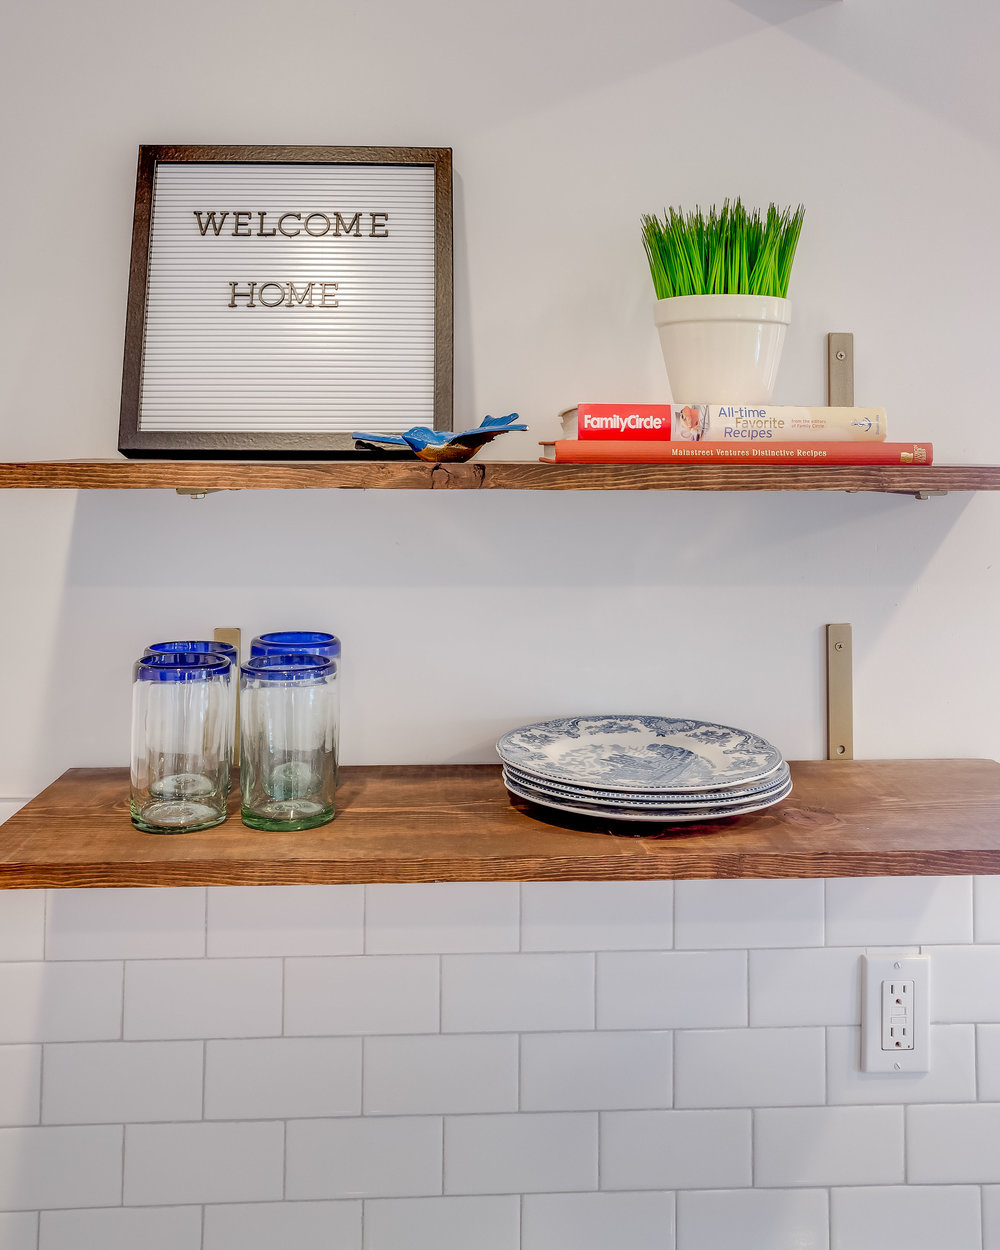 Photos by Mary Wyar - Toledo Home Tours